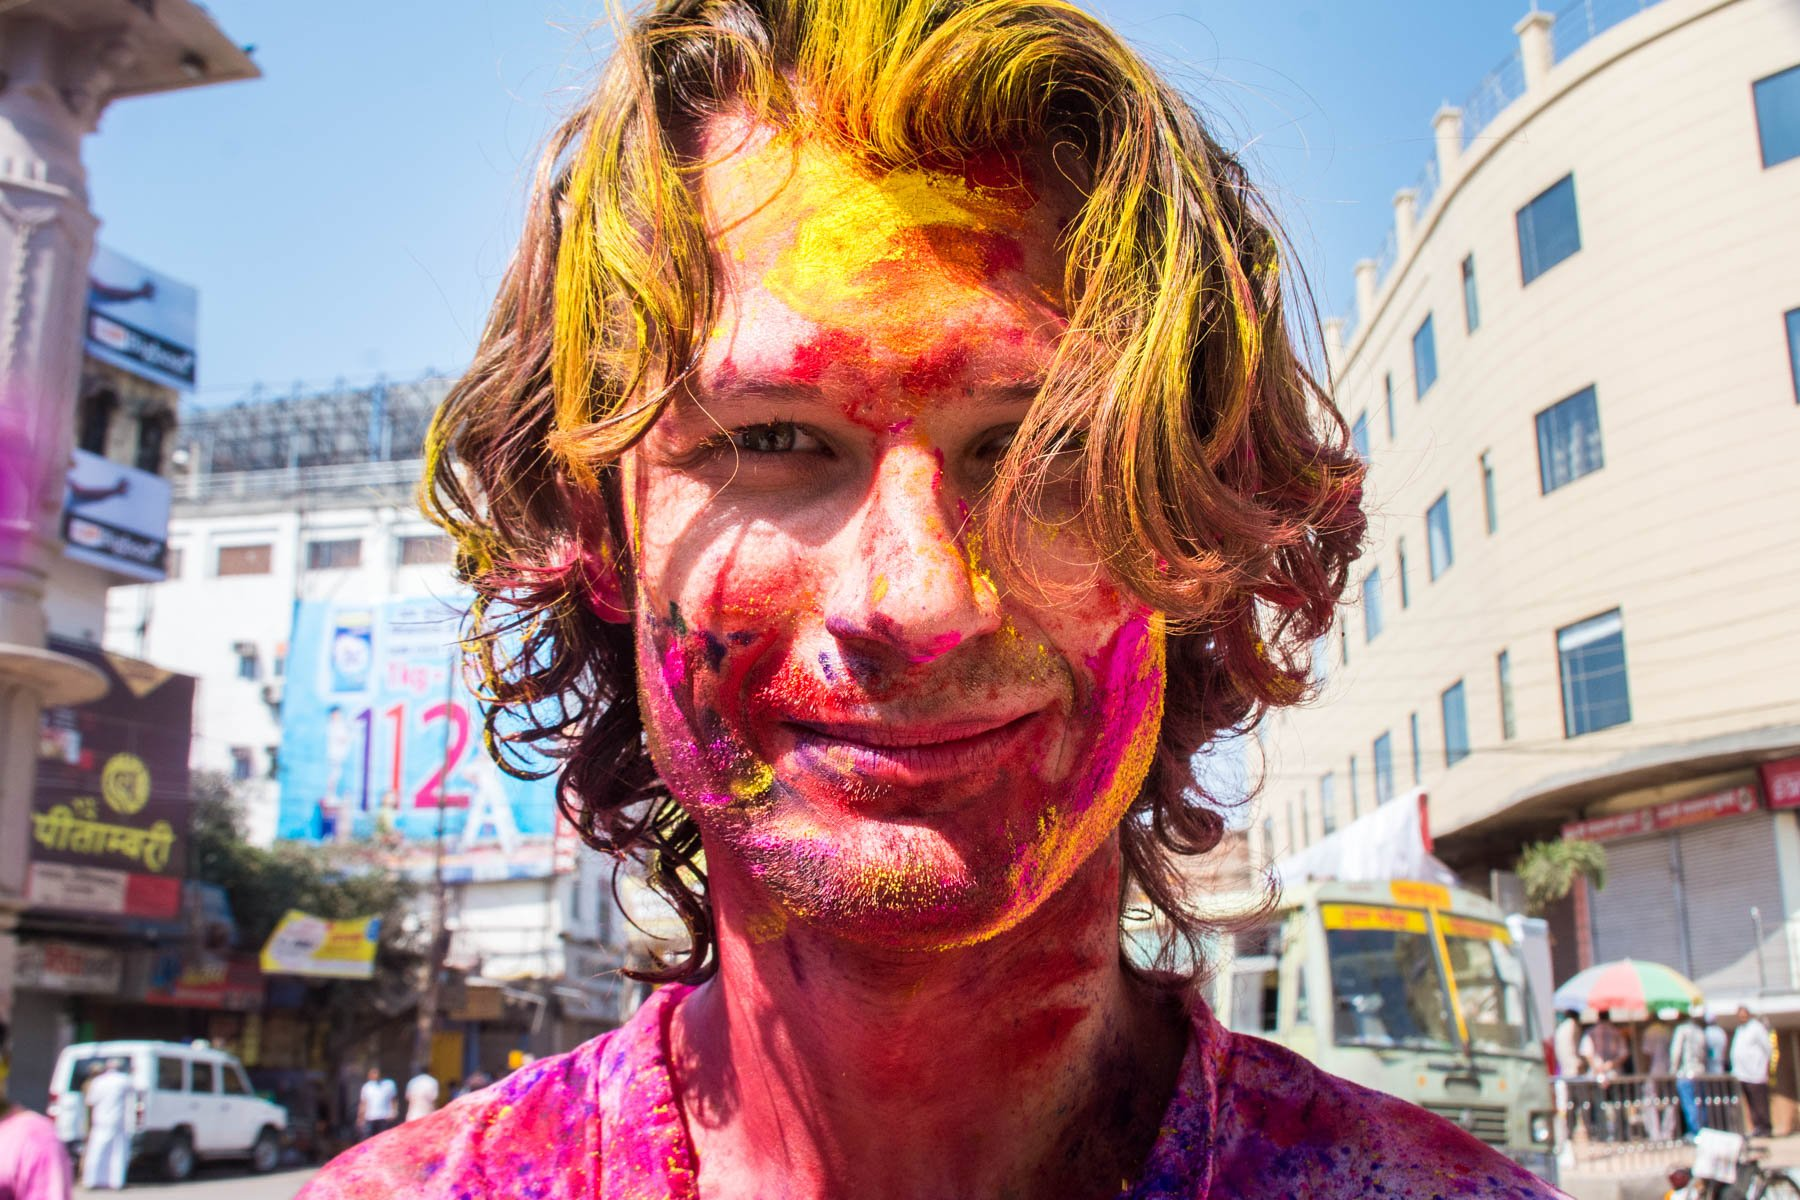 What you need know about playing Holi in Varanasi, India - Sebastiaan as a foreigner target - Lost With Purpose